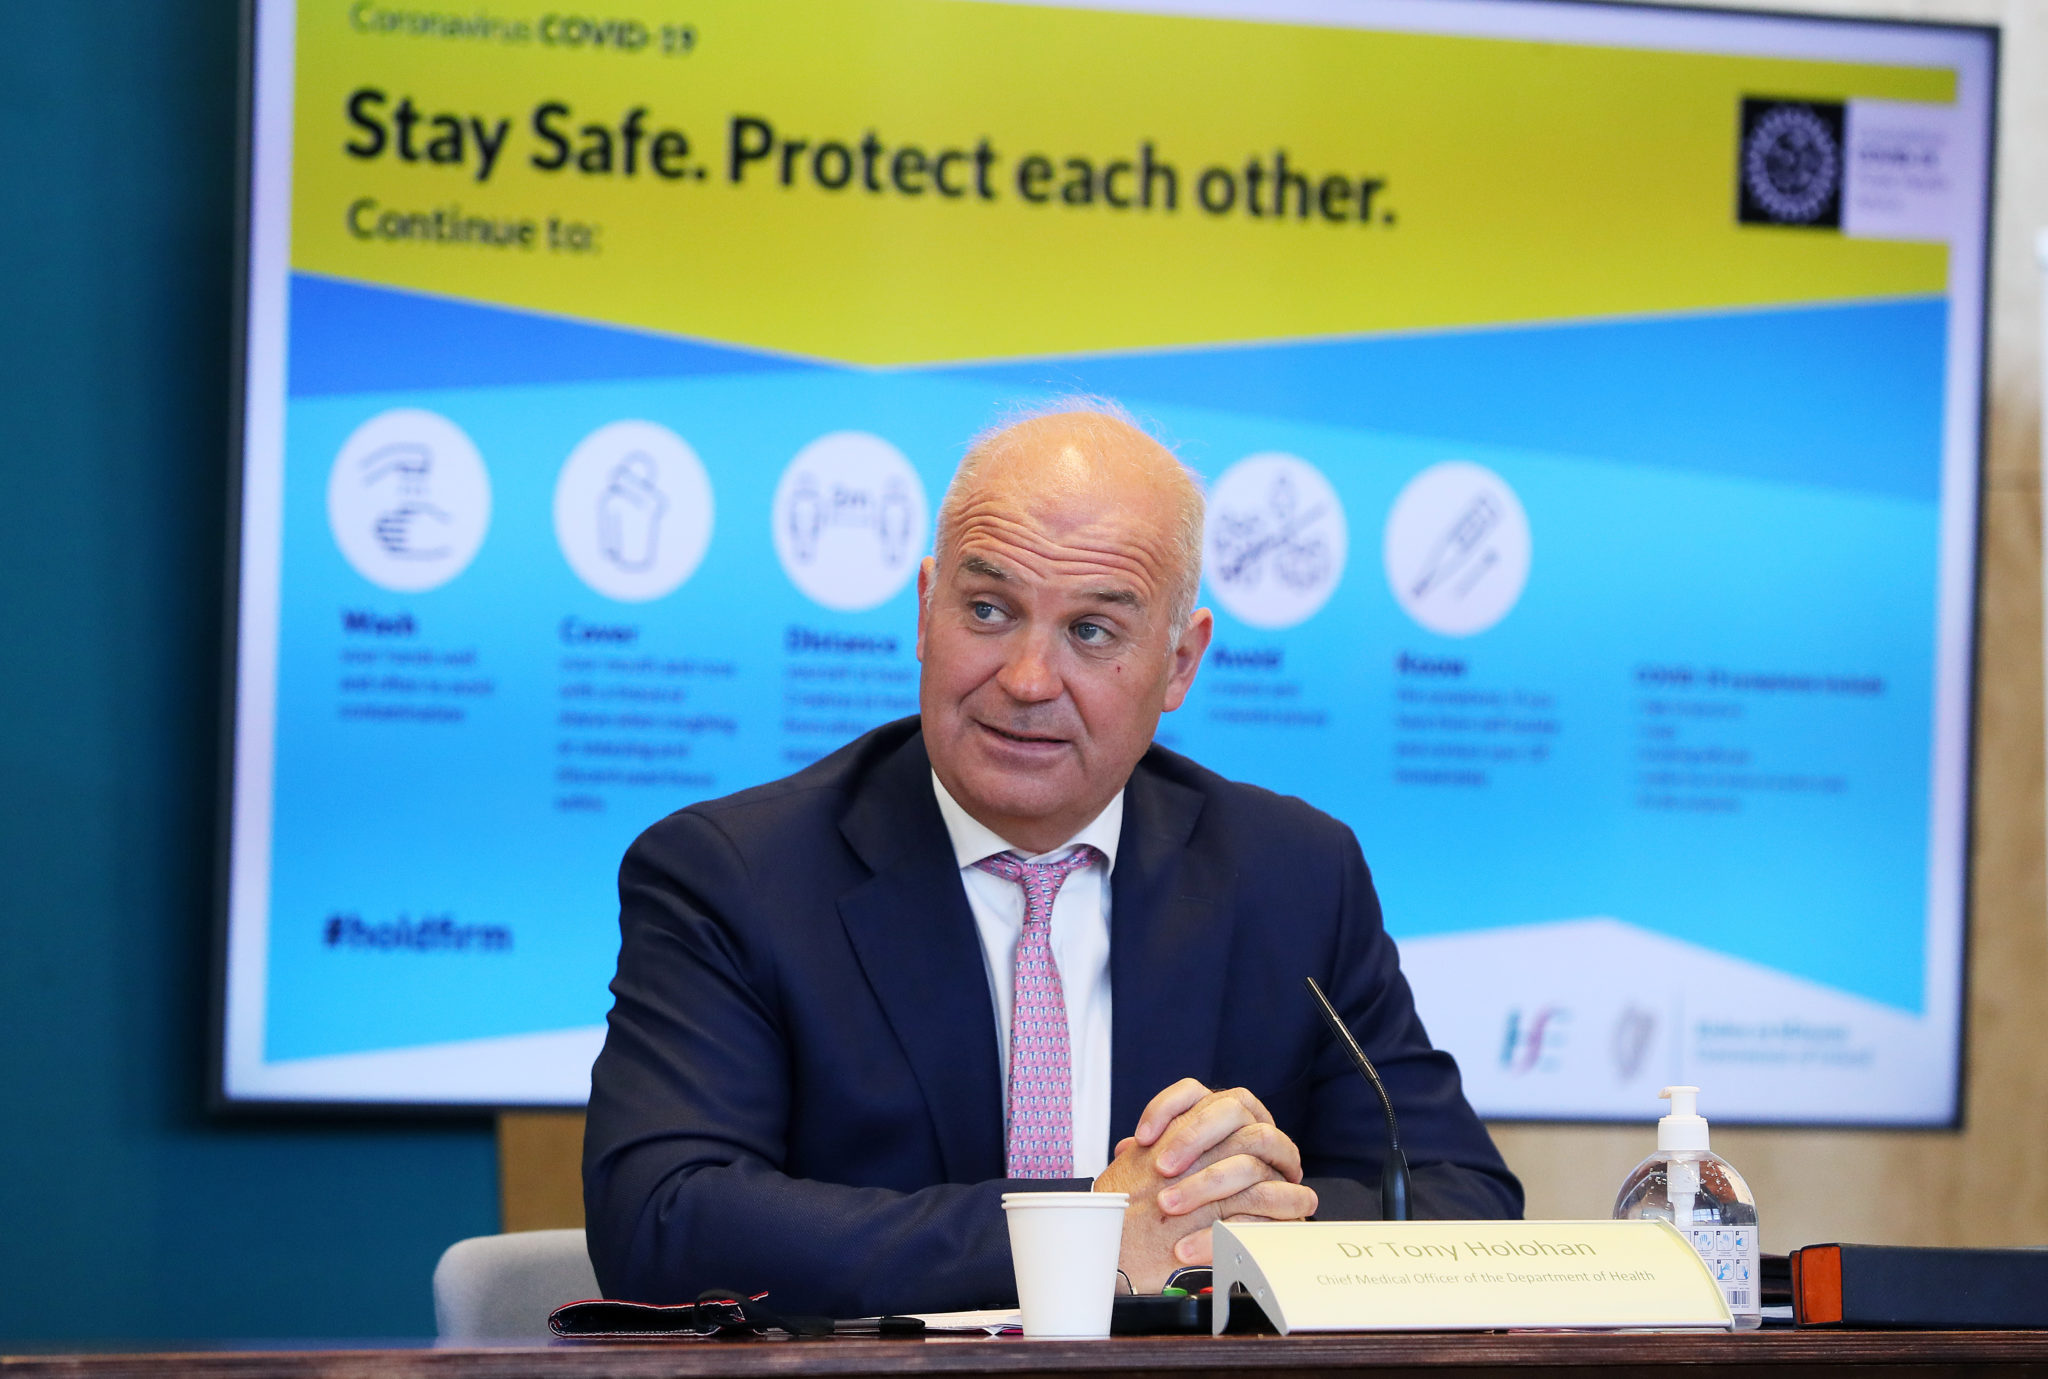 The CMO Dr Tony Holohan during a briefing at the Department of Health in Dublin, 07-05-2021. Image: Brian Lawless/PA Wire/PA Images